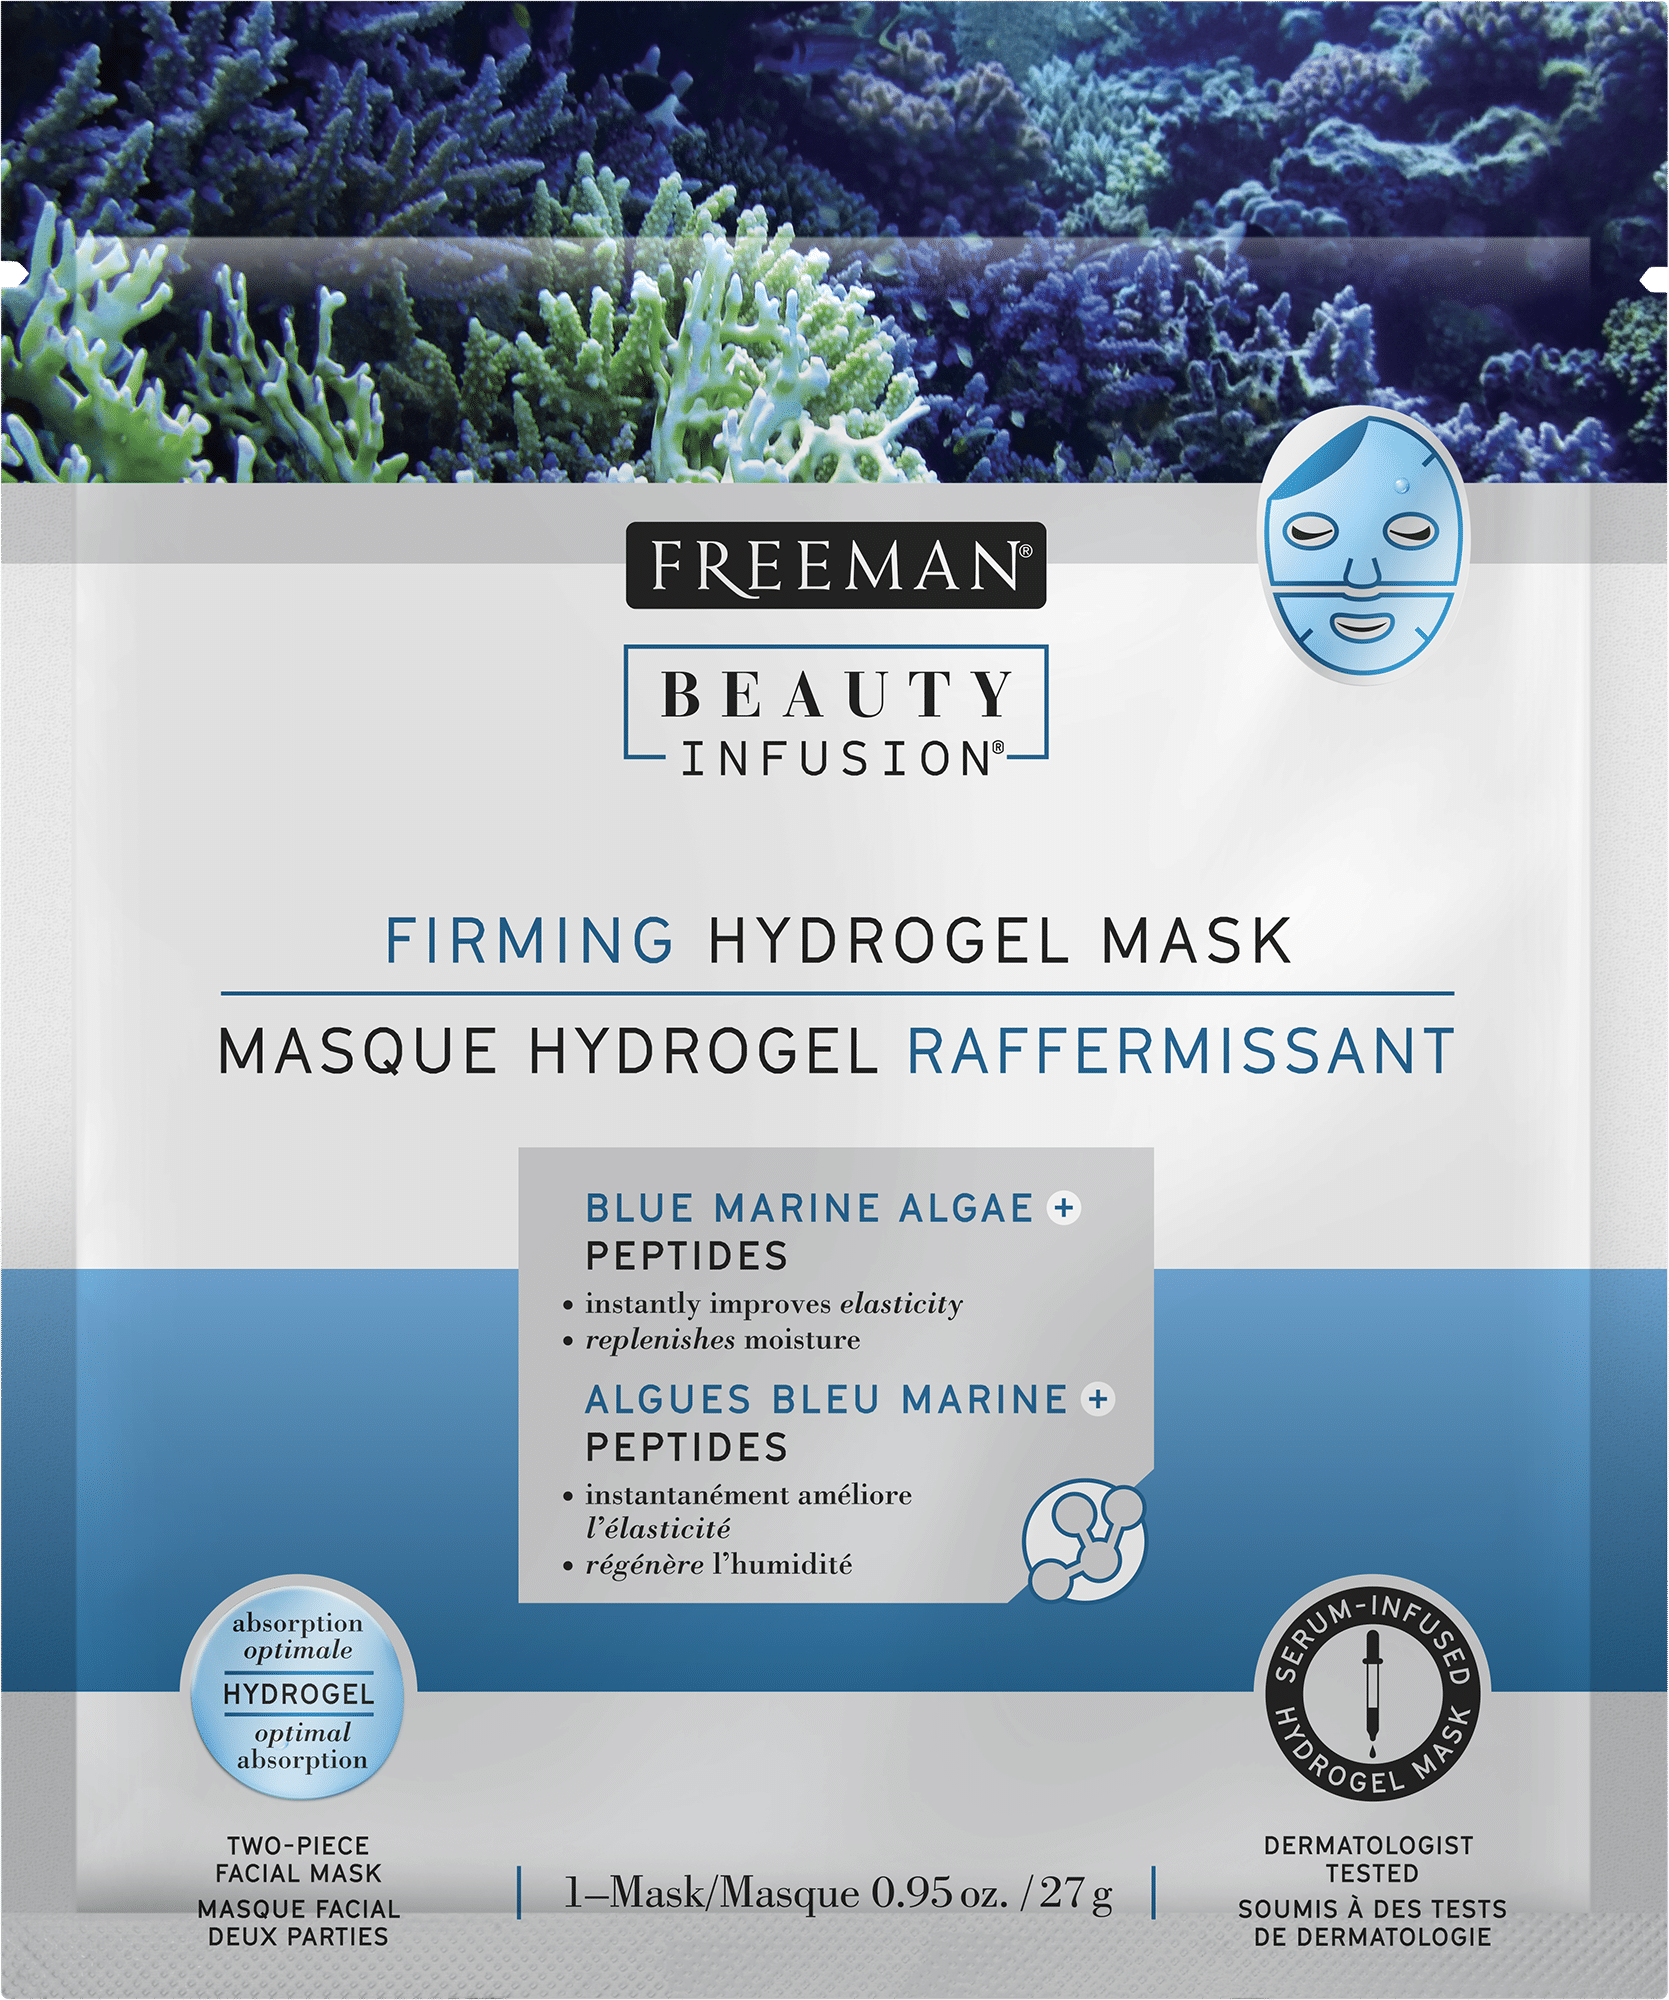 FIRMING HYDROGEL MASK BLUE MARINE ALGAE + PEPTIDES